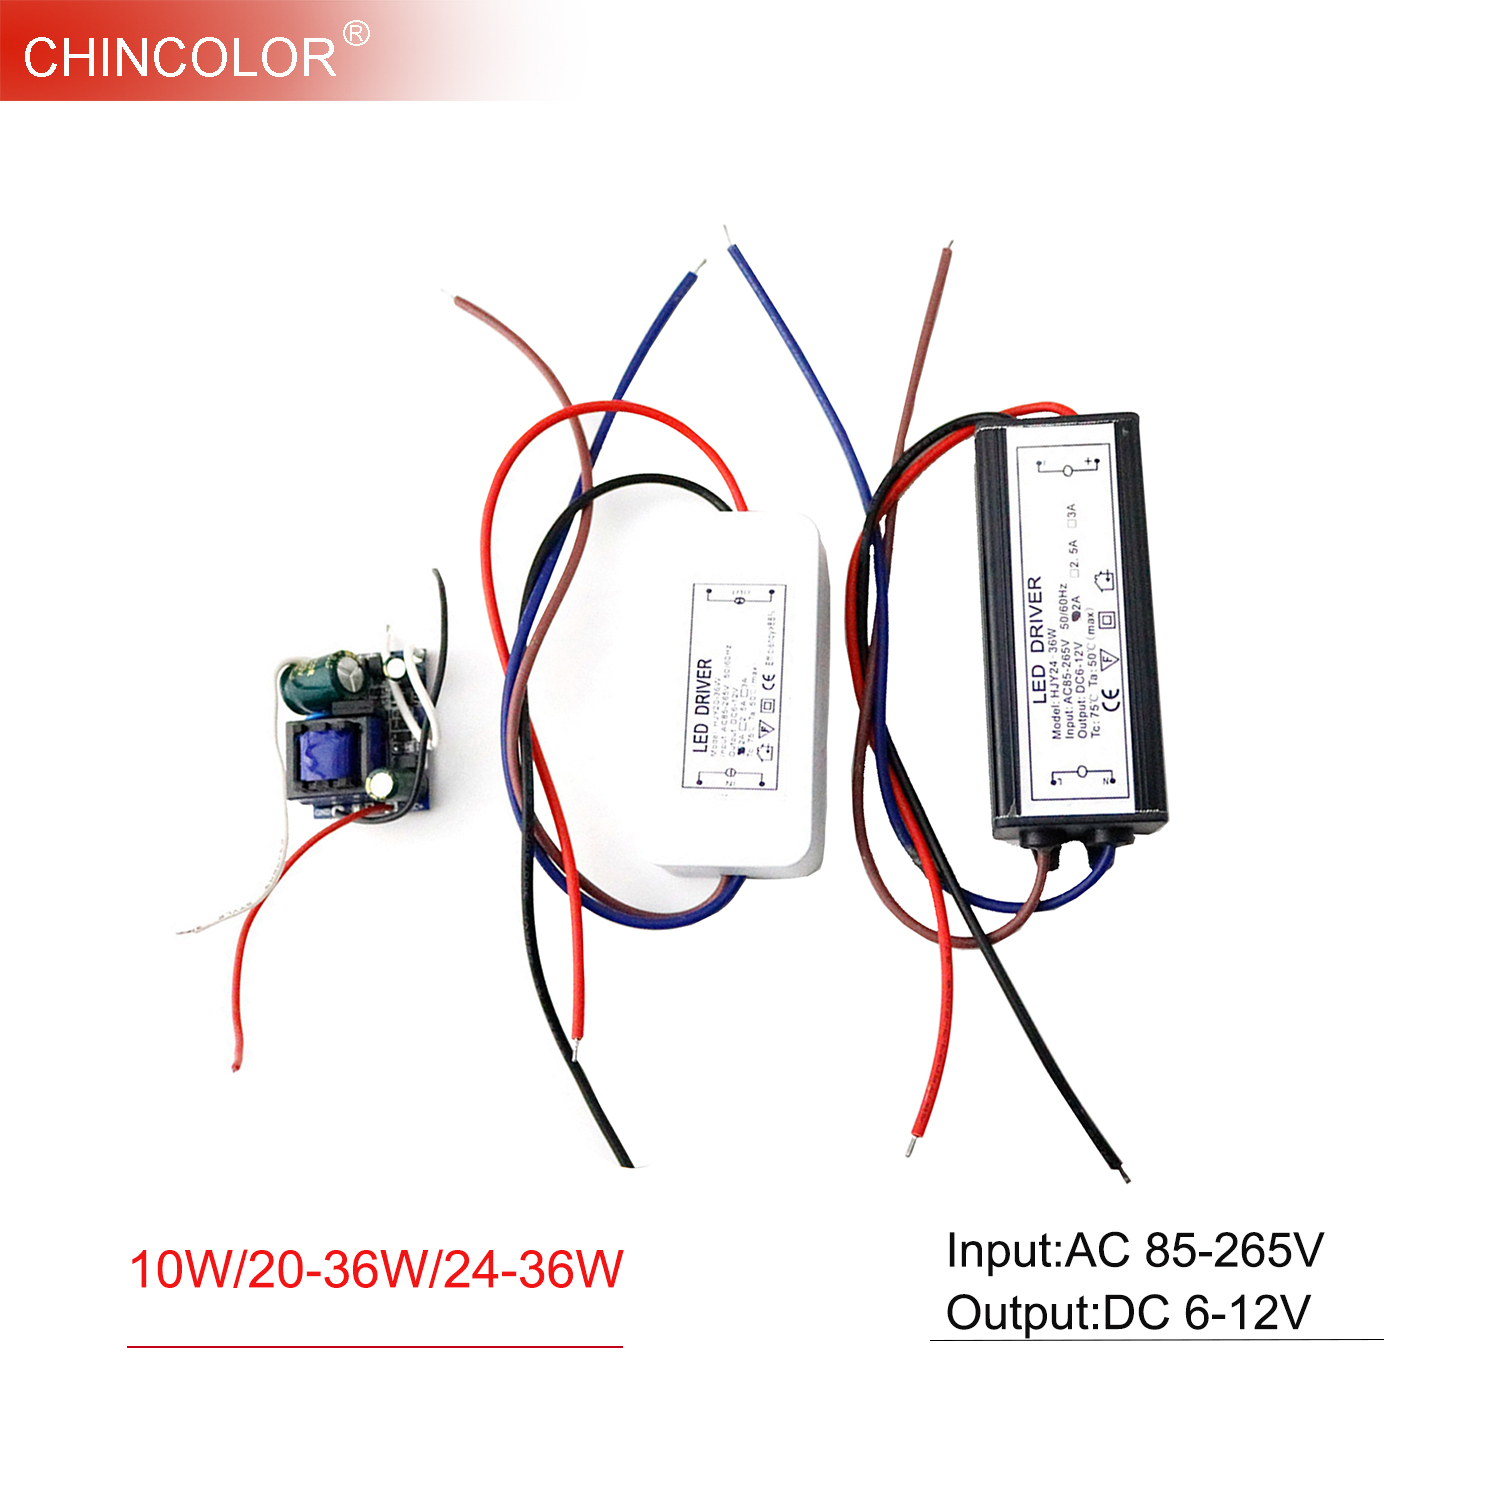 <font><b>LED</b></font> <font><b>Driver</b></font> Transformer Power Supply 10W 20-36W 24-36W <font><b>6V</b></font> - 12V 600mA 2A for 3*3W Input AC85-265V Spot Light Flood Light JQ image